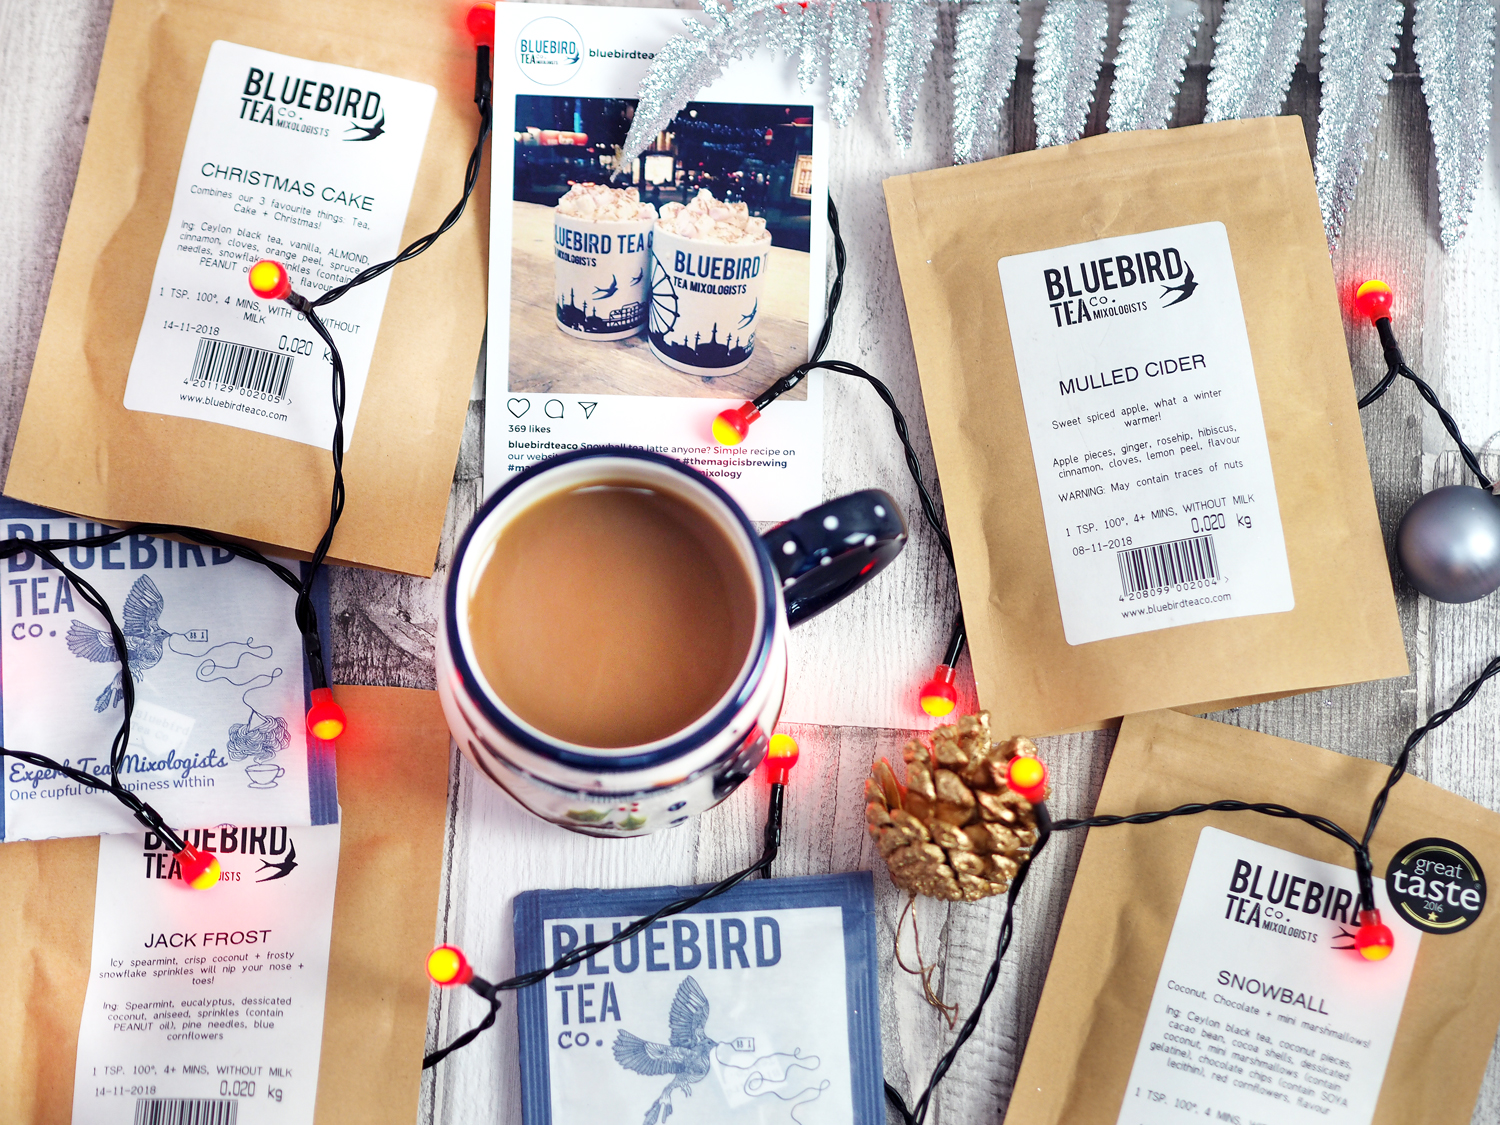 Bluebird Tea Co Christmas Blends Snowball Jack Frost Mulled Cider Earl Grey Creme Christmas Cake